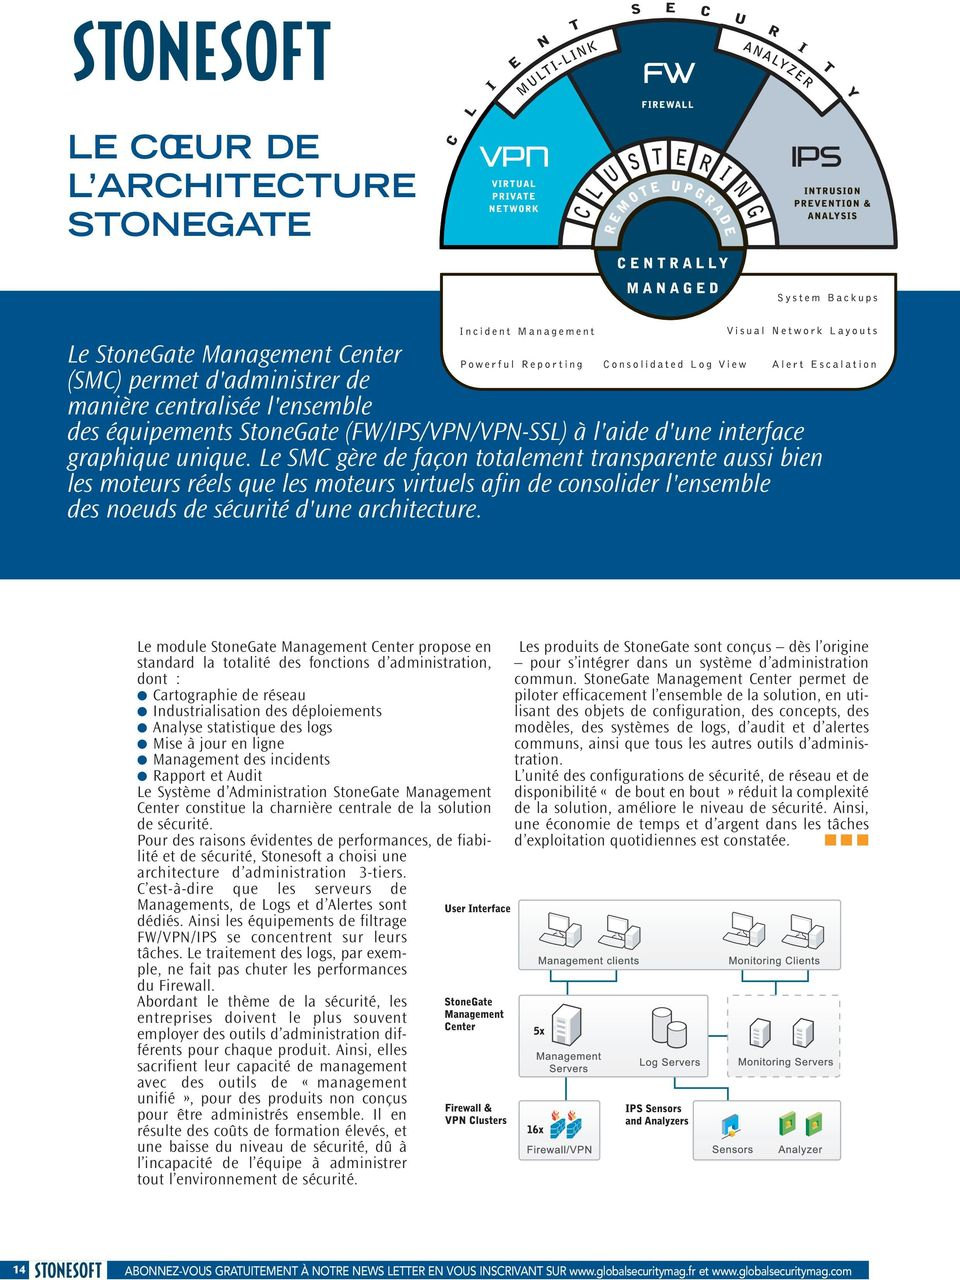 Le module StoneGate Management Center propose en standard la totalité des fonctions d administration, dont : Cartographie de réseau Industrialisation des déploiements Analyse statistique des logs